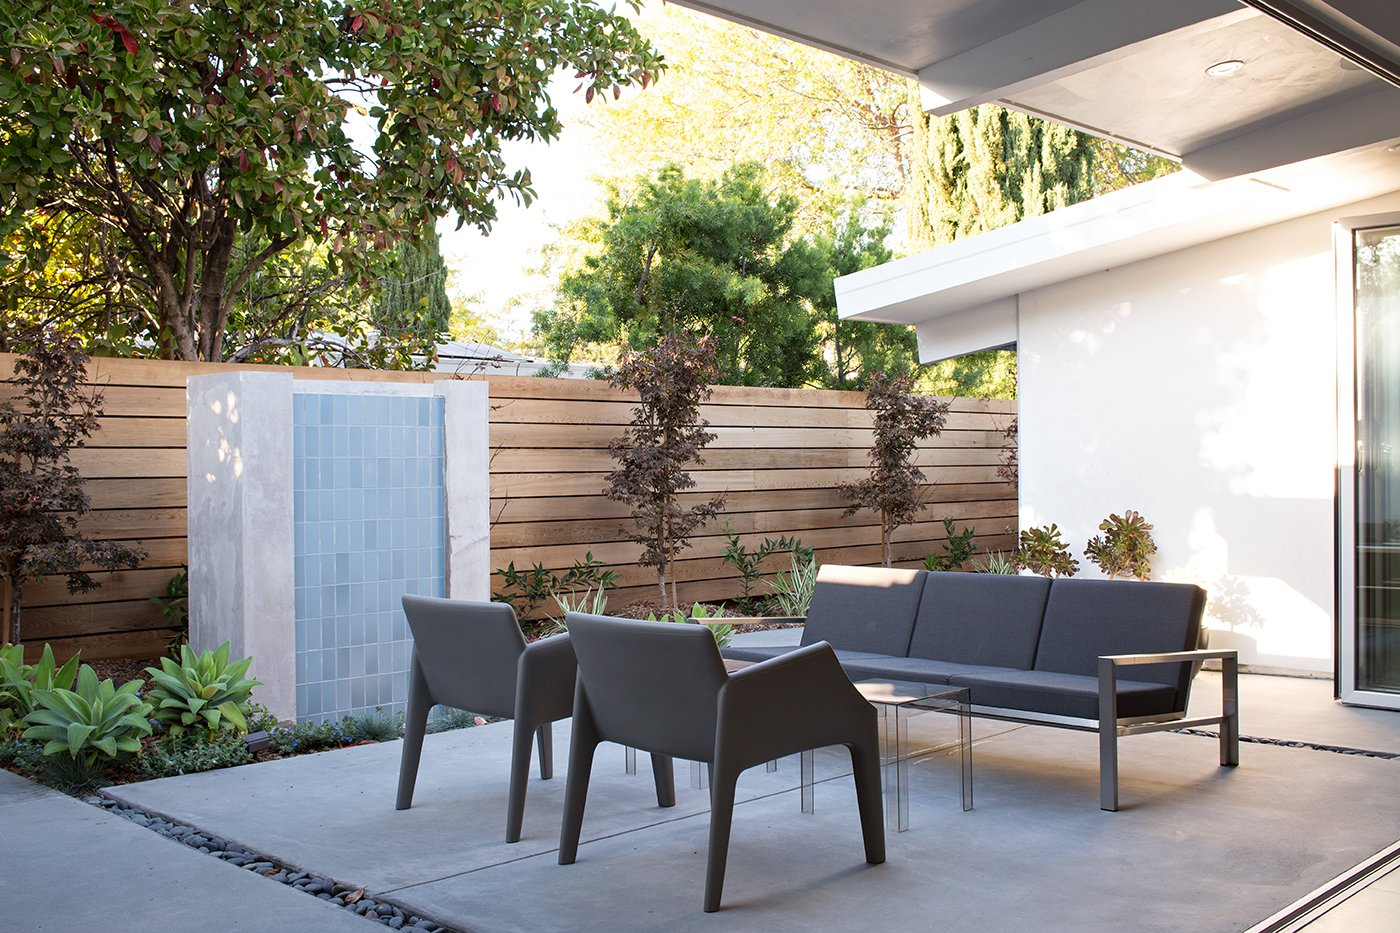 Outside, a contemplative sitting area centers on a fountain clad in tiles by Heath Ceramics. A Case Study Stainless couch by Modernica and Magic Hole armchairs by Kartell are positioned around Jolly side tables by Kartell.  Photo 8 of 8 in Indoor-Outdoor Home by a Midcentury Master Gets a Faithful Update